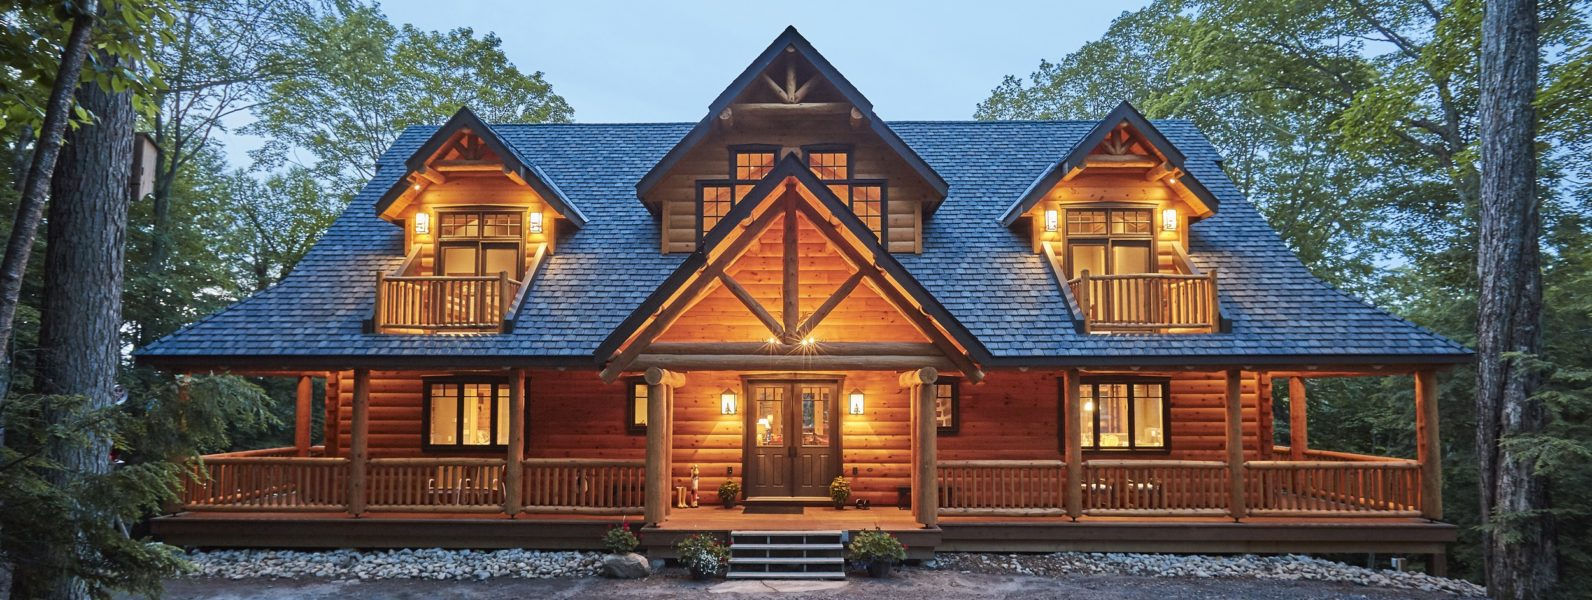 Citadel PPK Thumbnail True North Log Homes Log Cabin Kit Log Home Kit